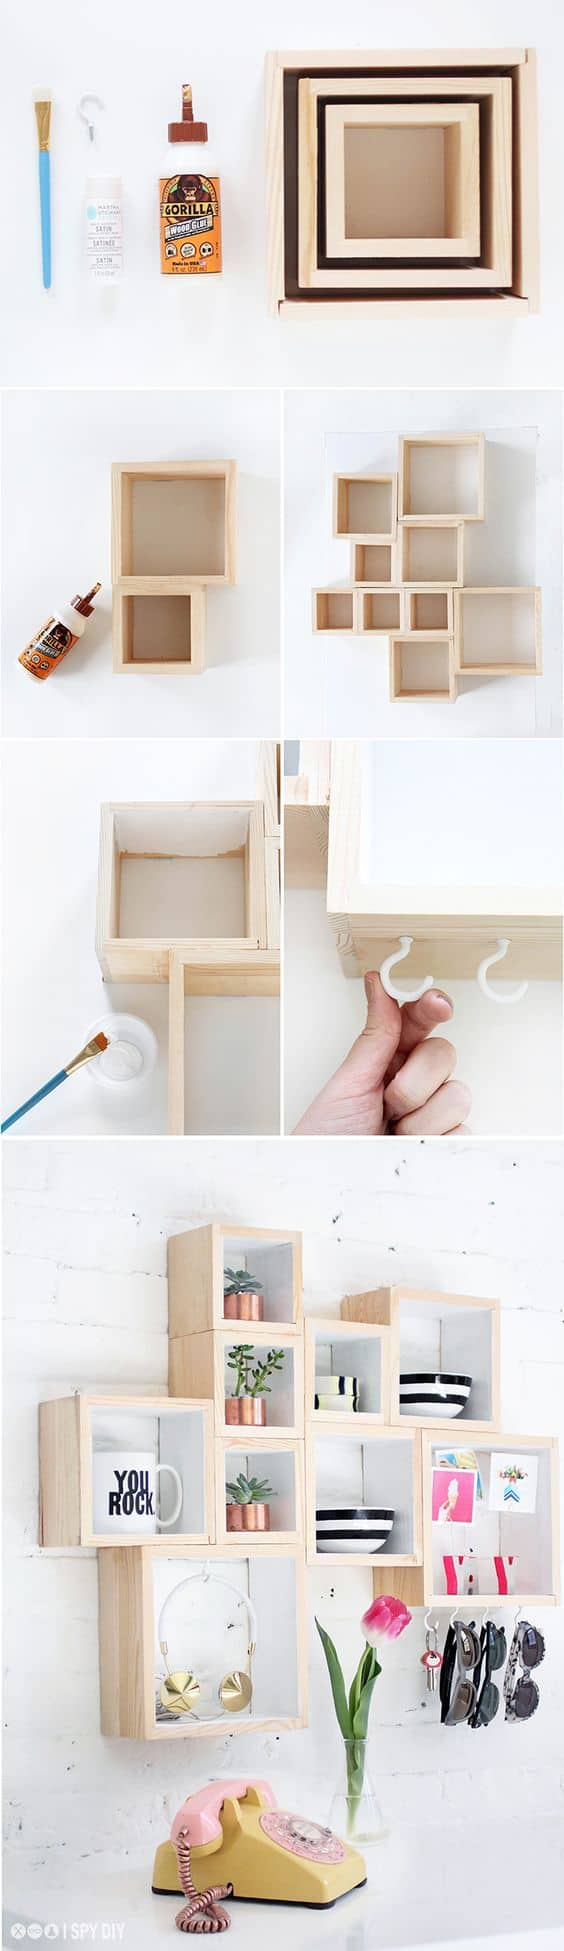 5 boxed shelving DIY via simphome